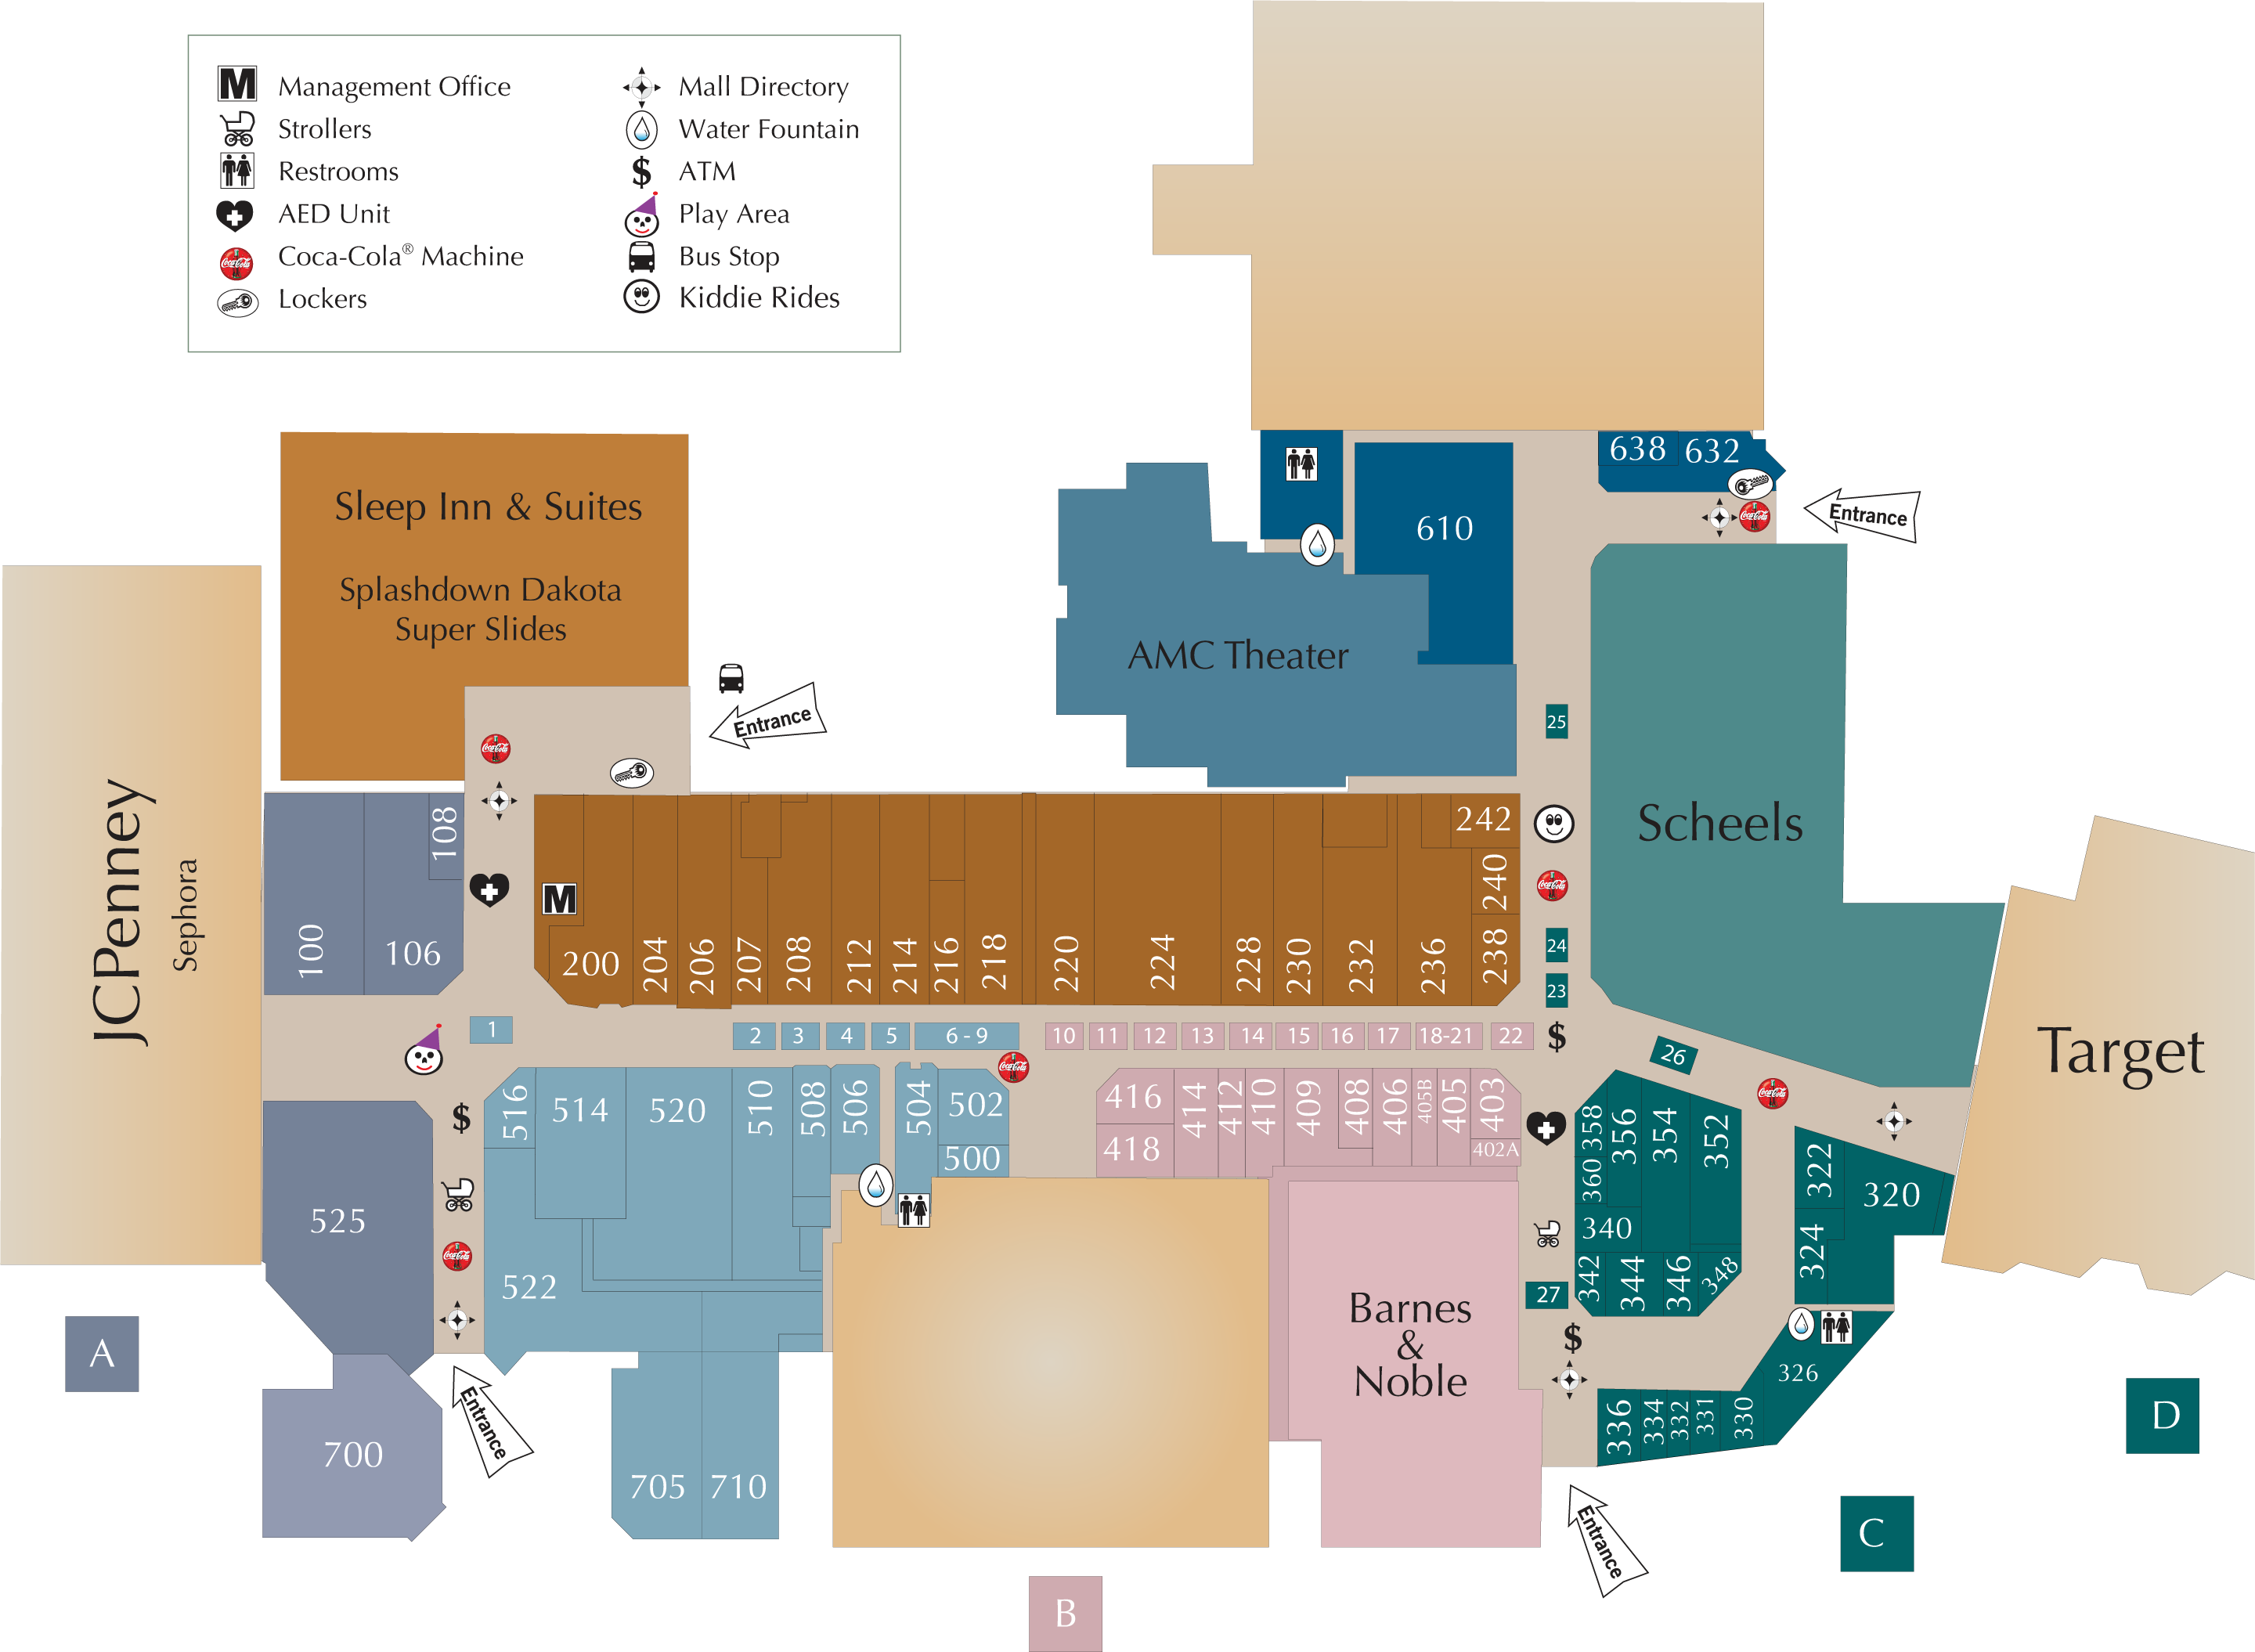 Dakota Square Mall directory map